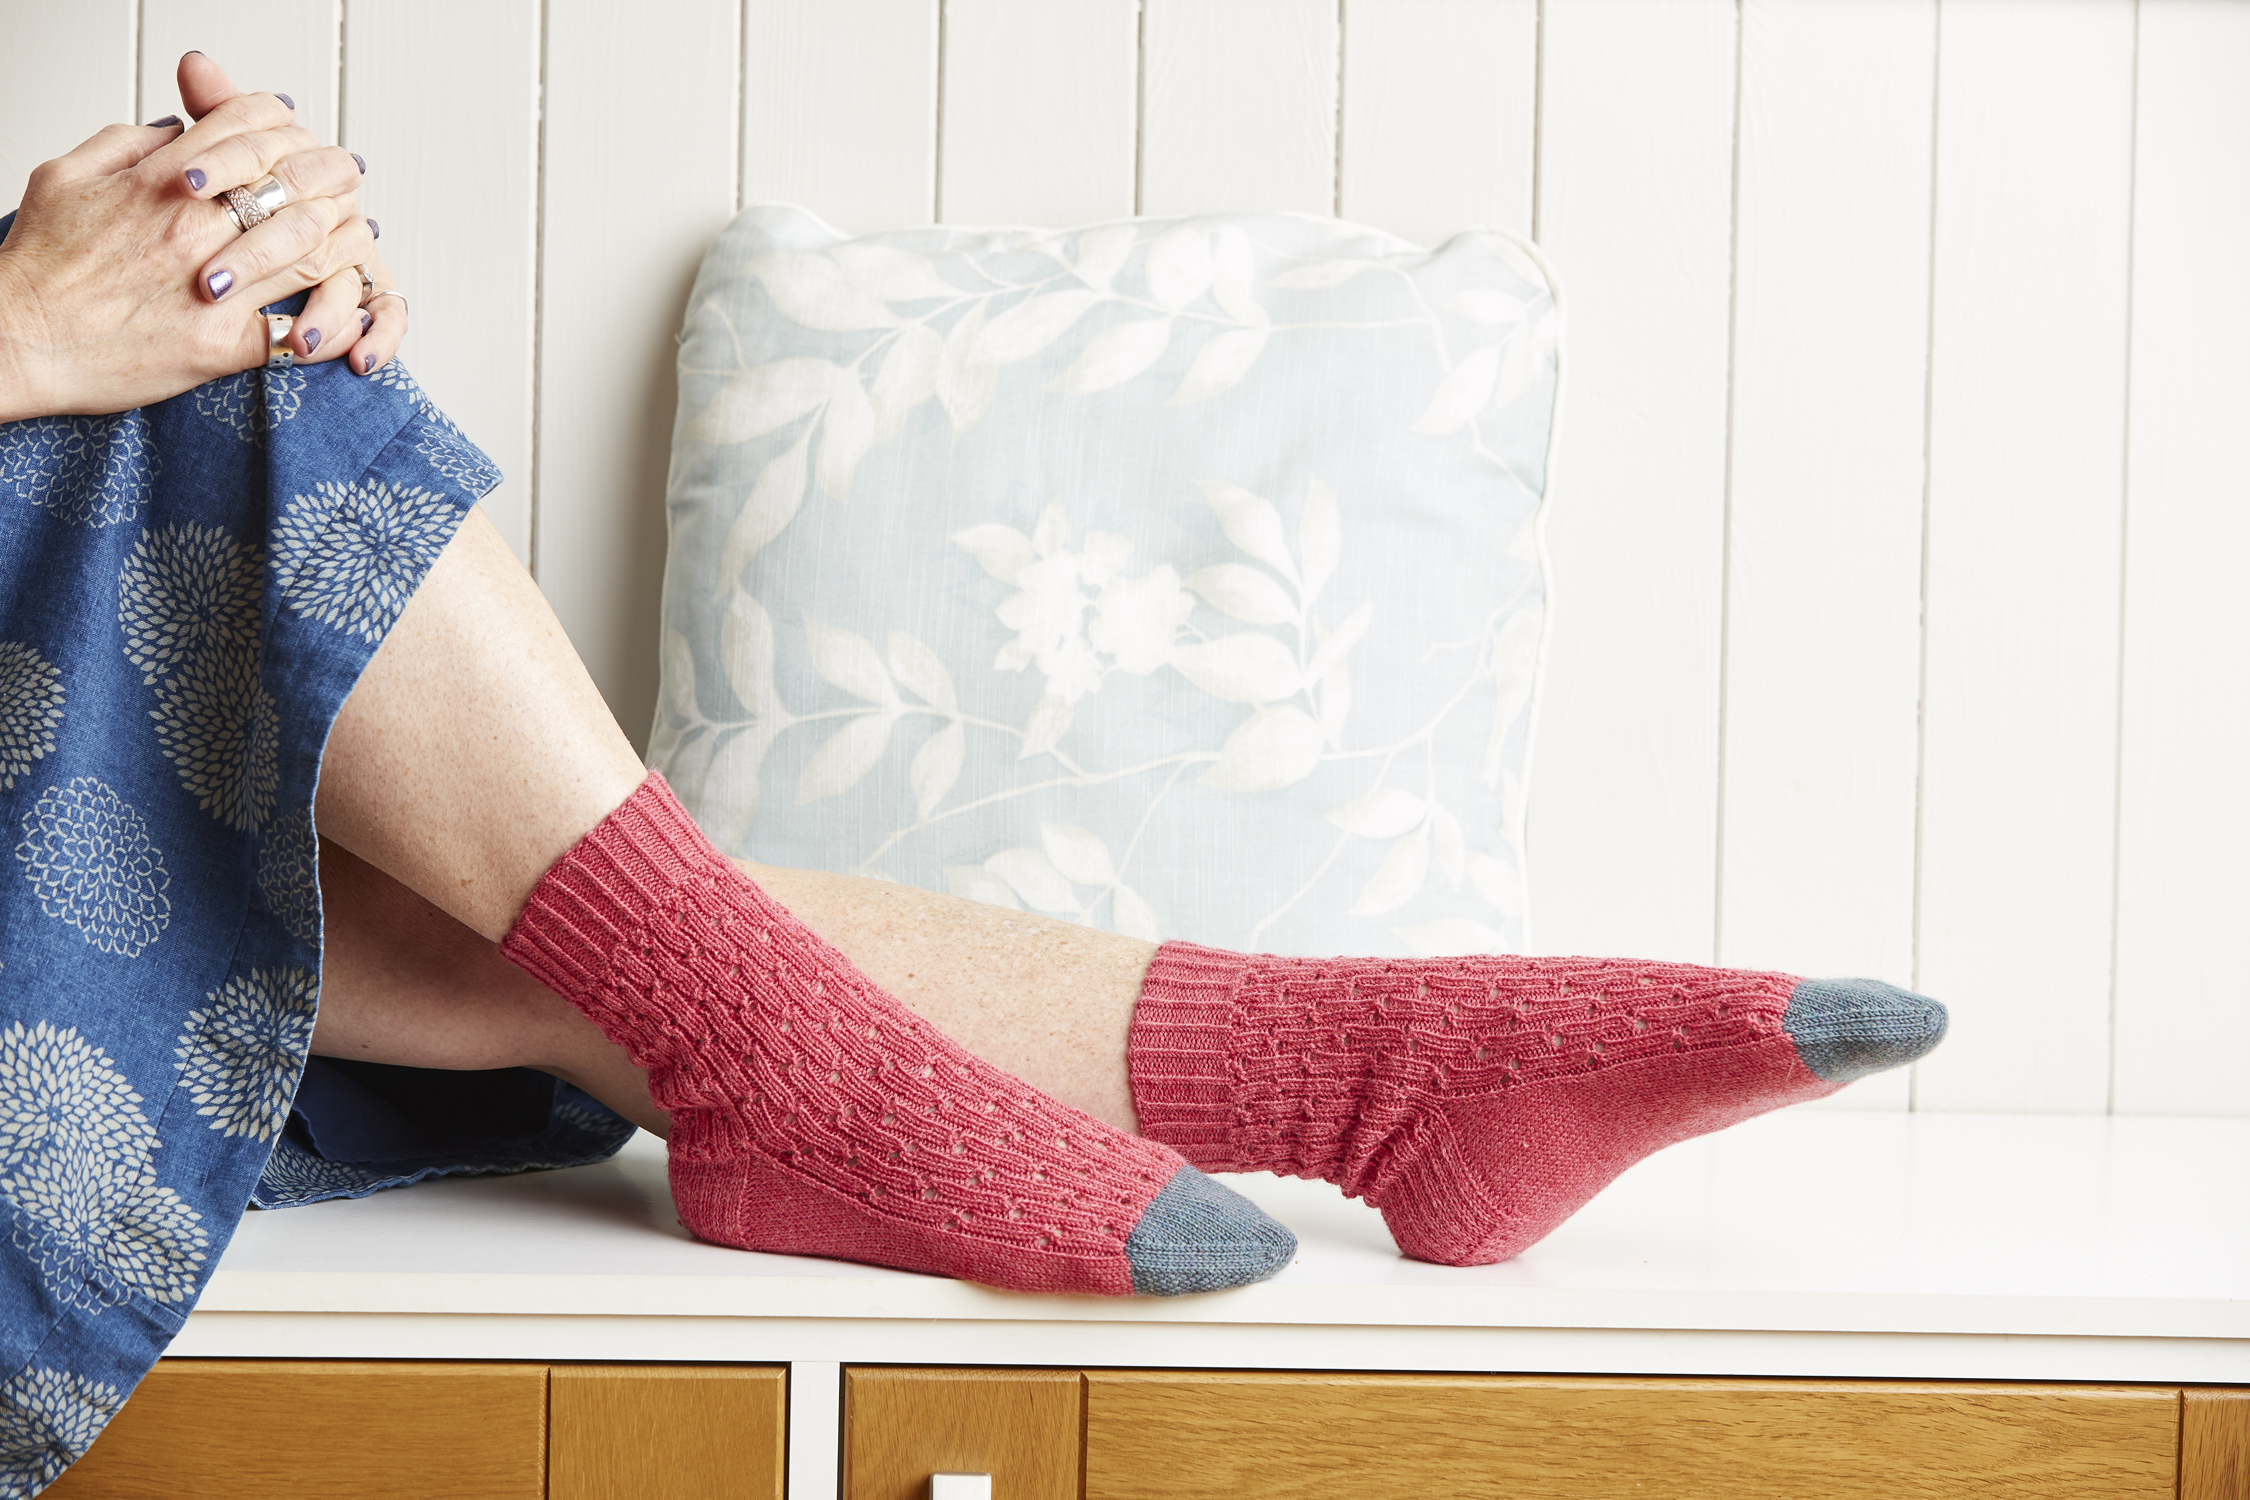 The Antirrhinum socks use a heel flap and turn construction and are worked down from the cuff to toes.